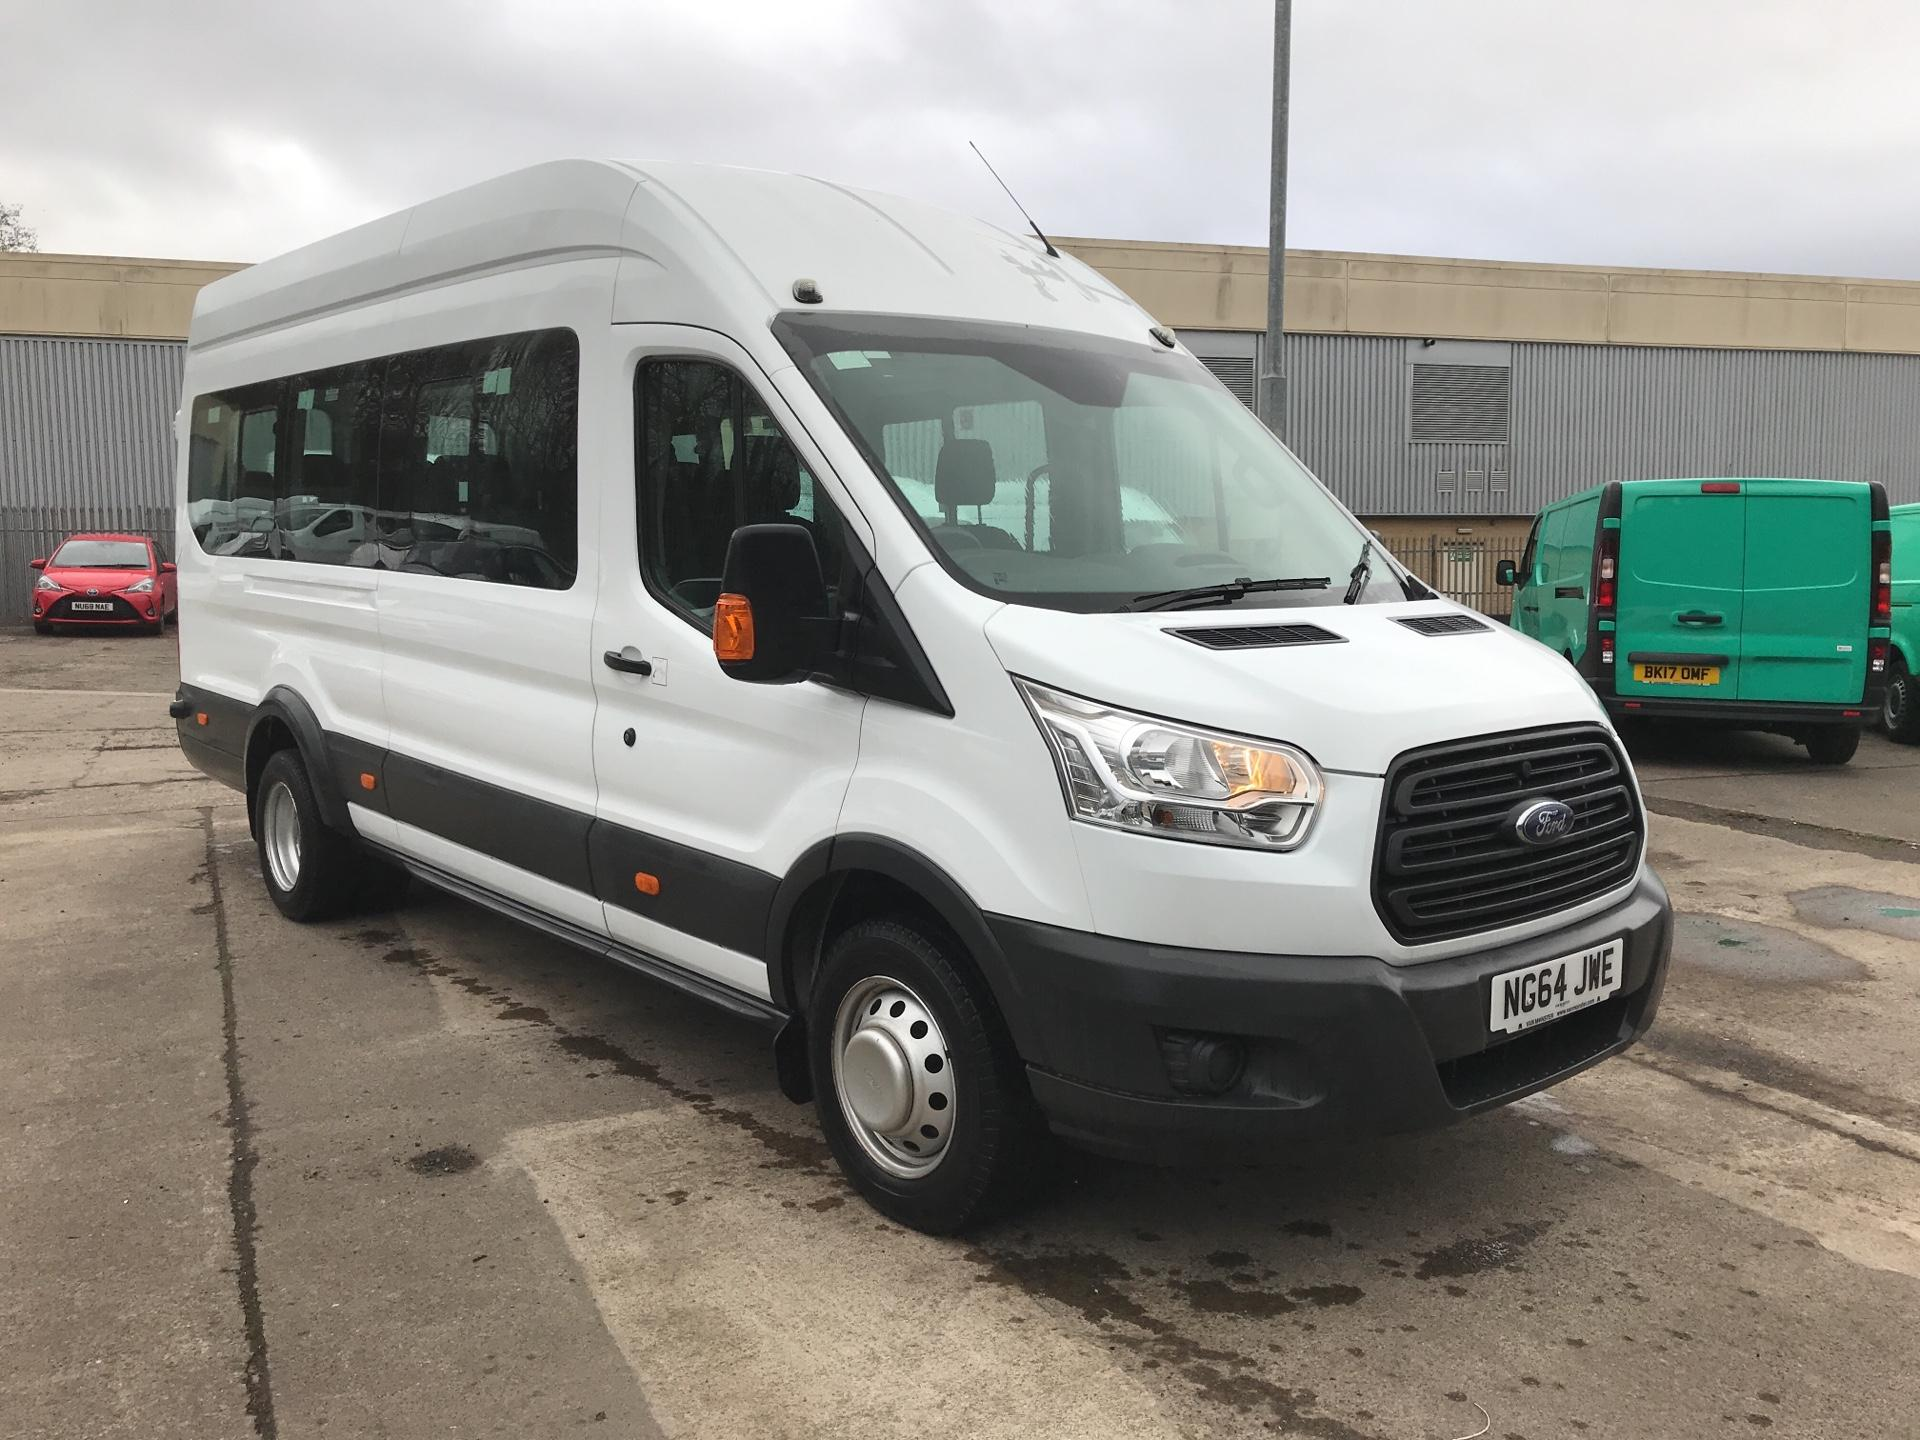 2015 Ford Transit 460 L4 H3 HIGH ROOF MINIBUS 17 SEATER 125PS EURO 6 (NG64JWE)